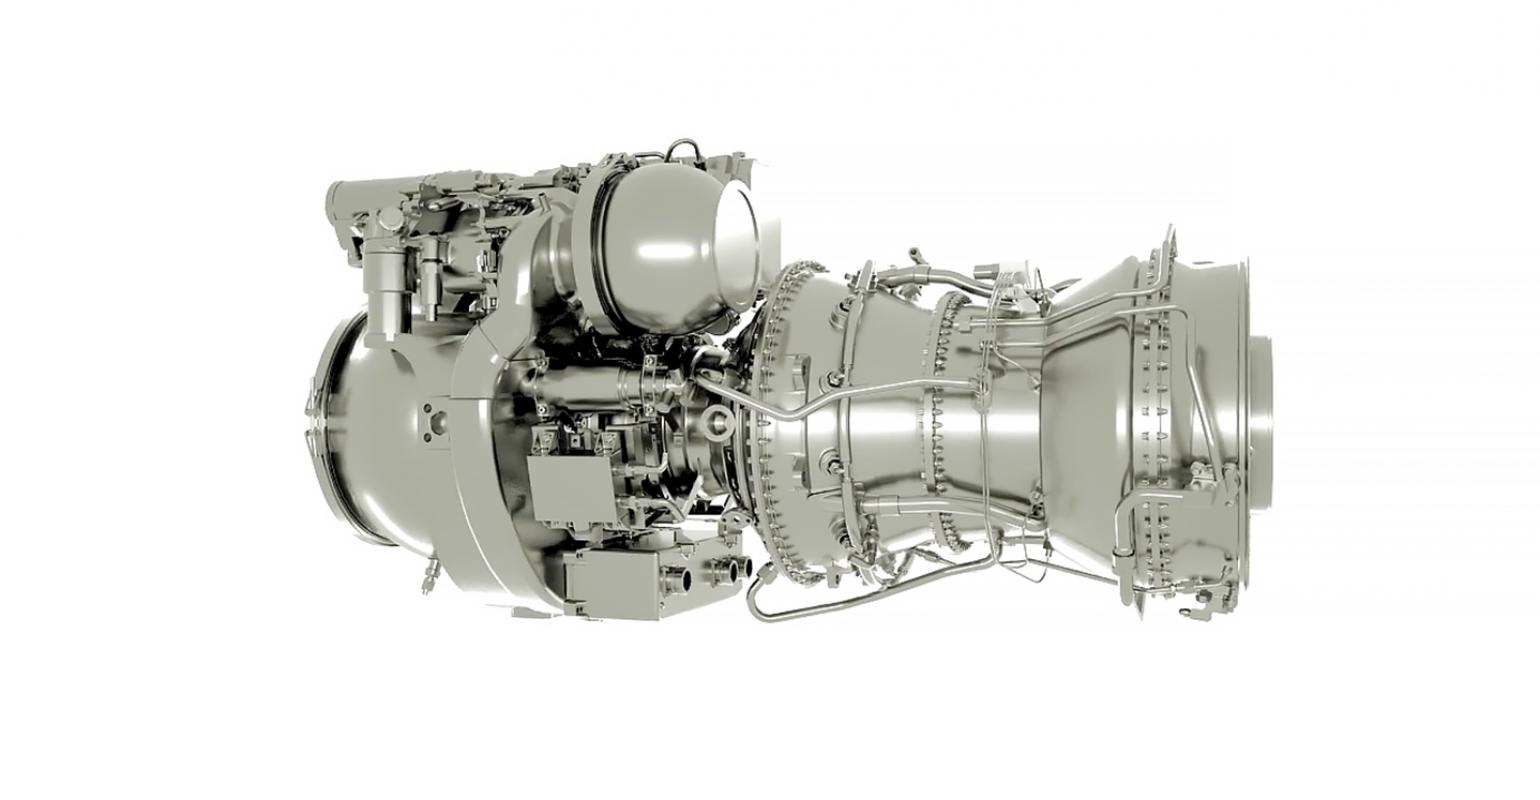 The T901 turboshaft engine will replace the current T701 engine in the Boeing AH-64 Apaches and Sikorsky UH-60 Black Hawks, and also may power the Army's Future Attack Reconnaissance Aircraft, after 2025.